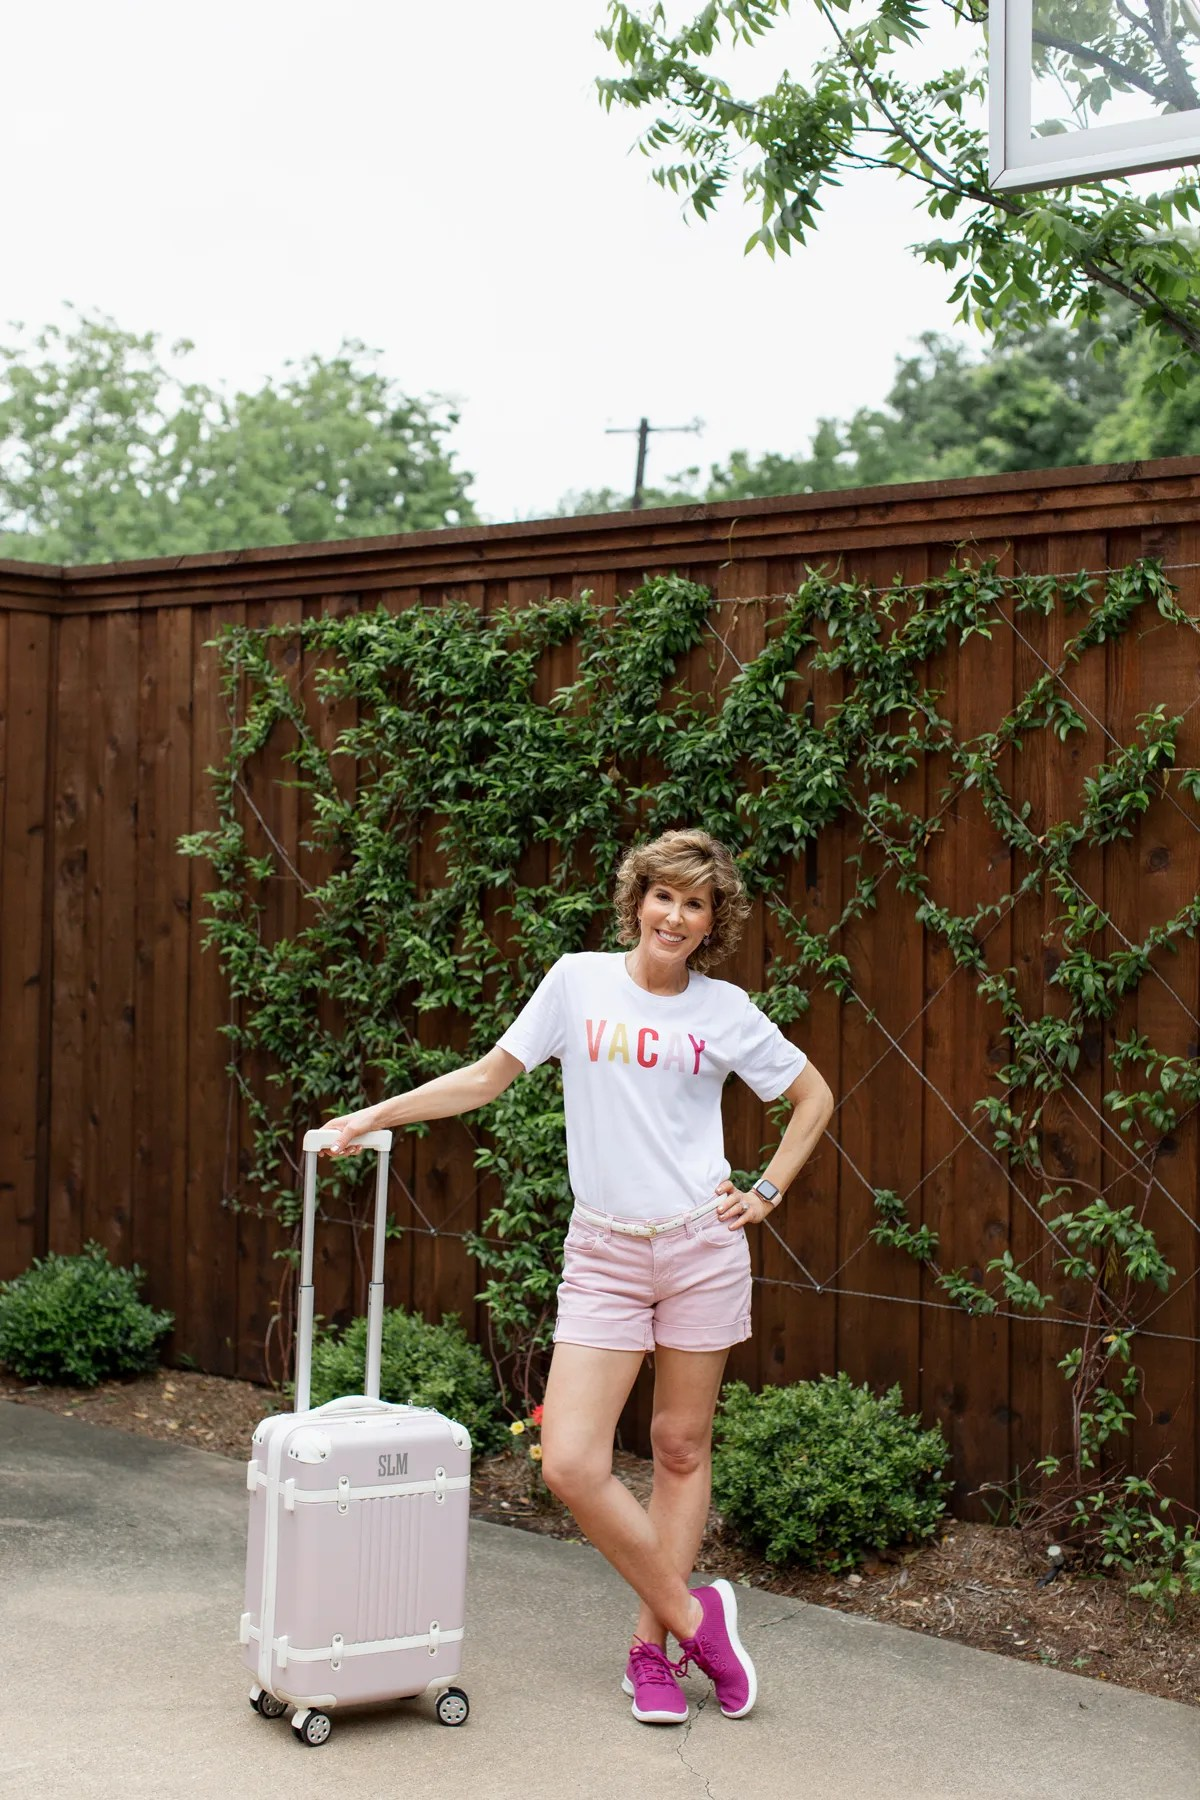 woman wearing vacay tee posing with blush carry-on suitcase